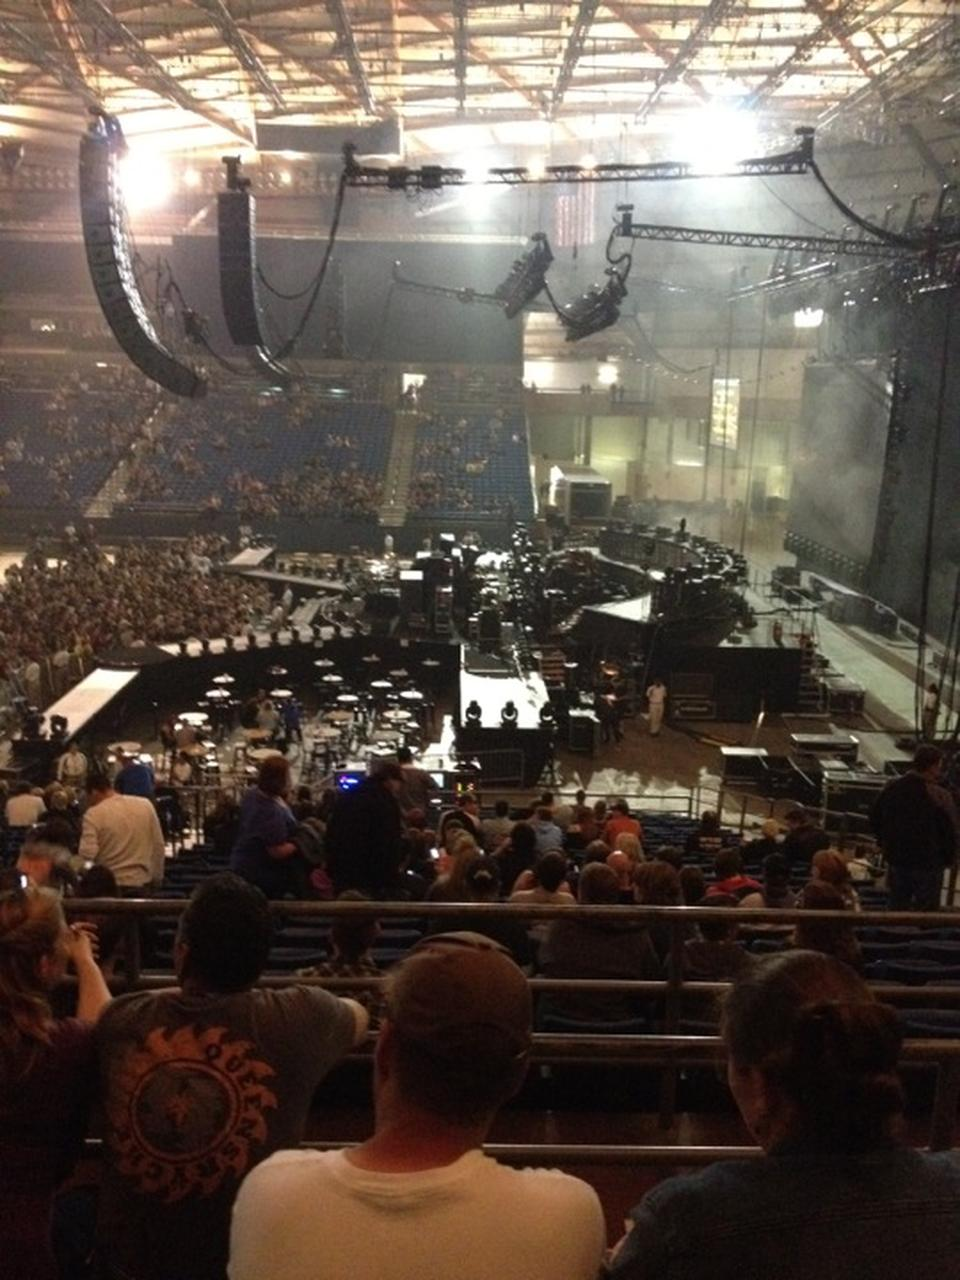 Tacoma Dome Section 10a Rateyourseats Com